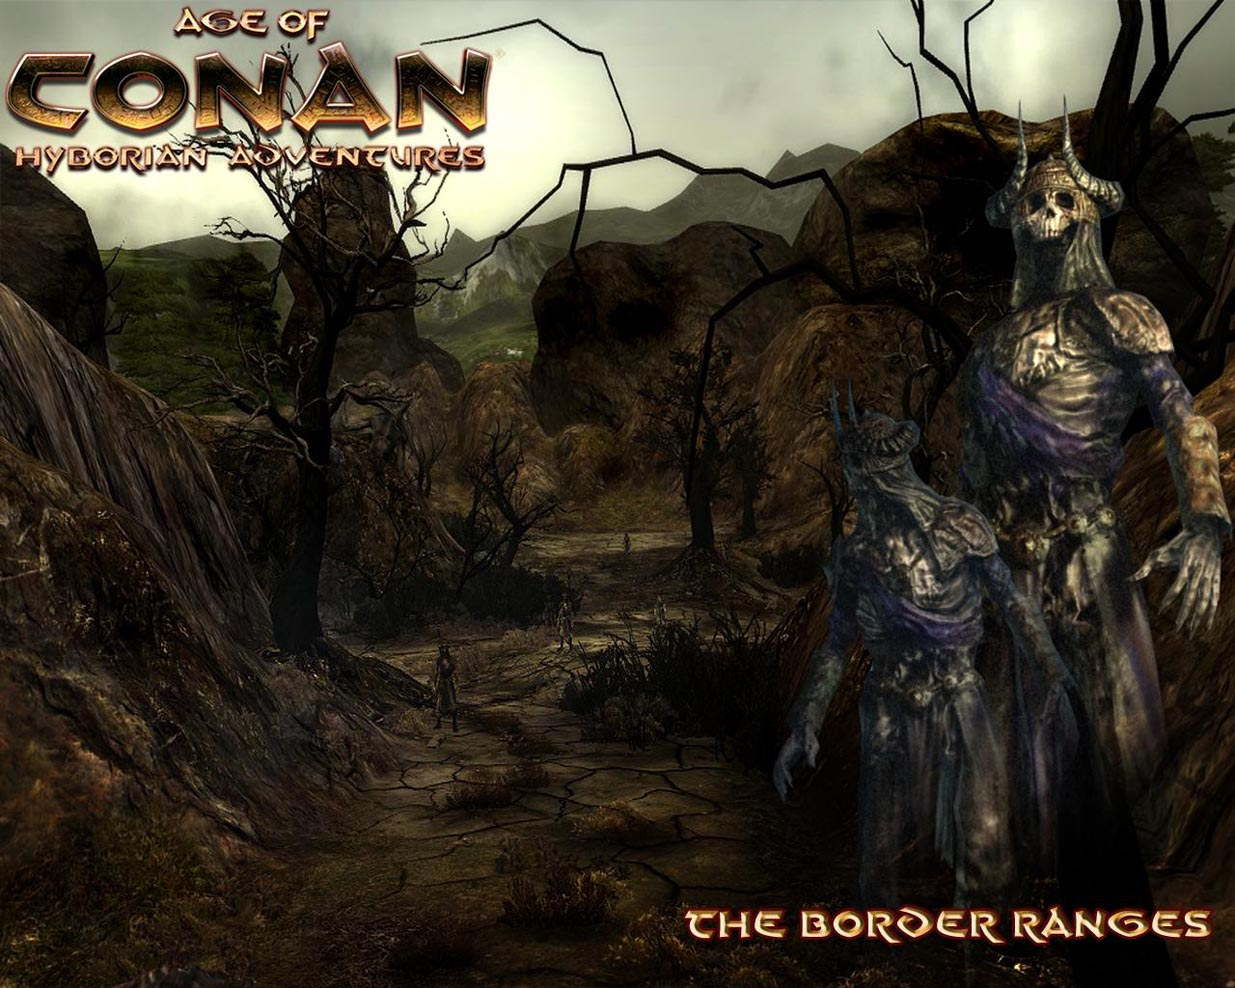 Age of Conan Hyborian Adventures Review Wallpaper Game MMOLite 1235x988